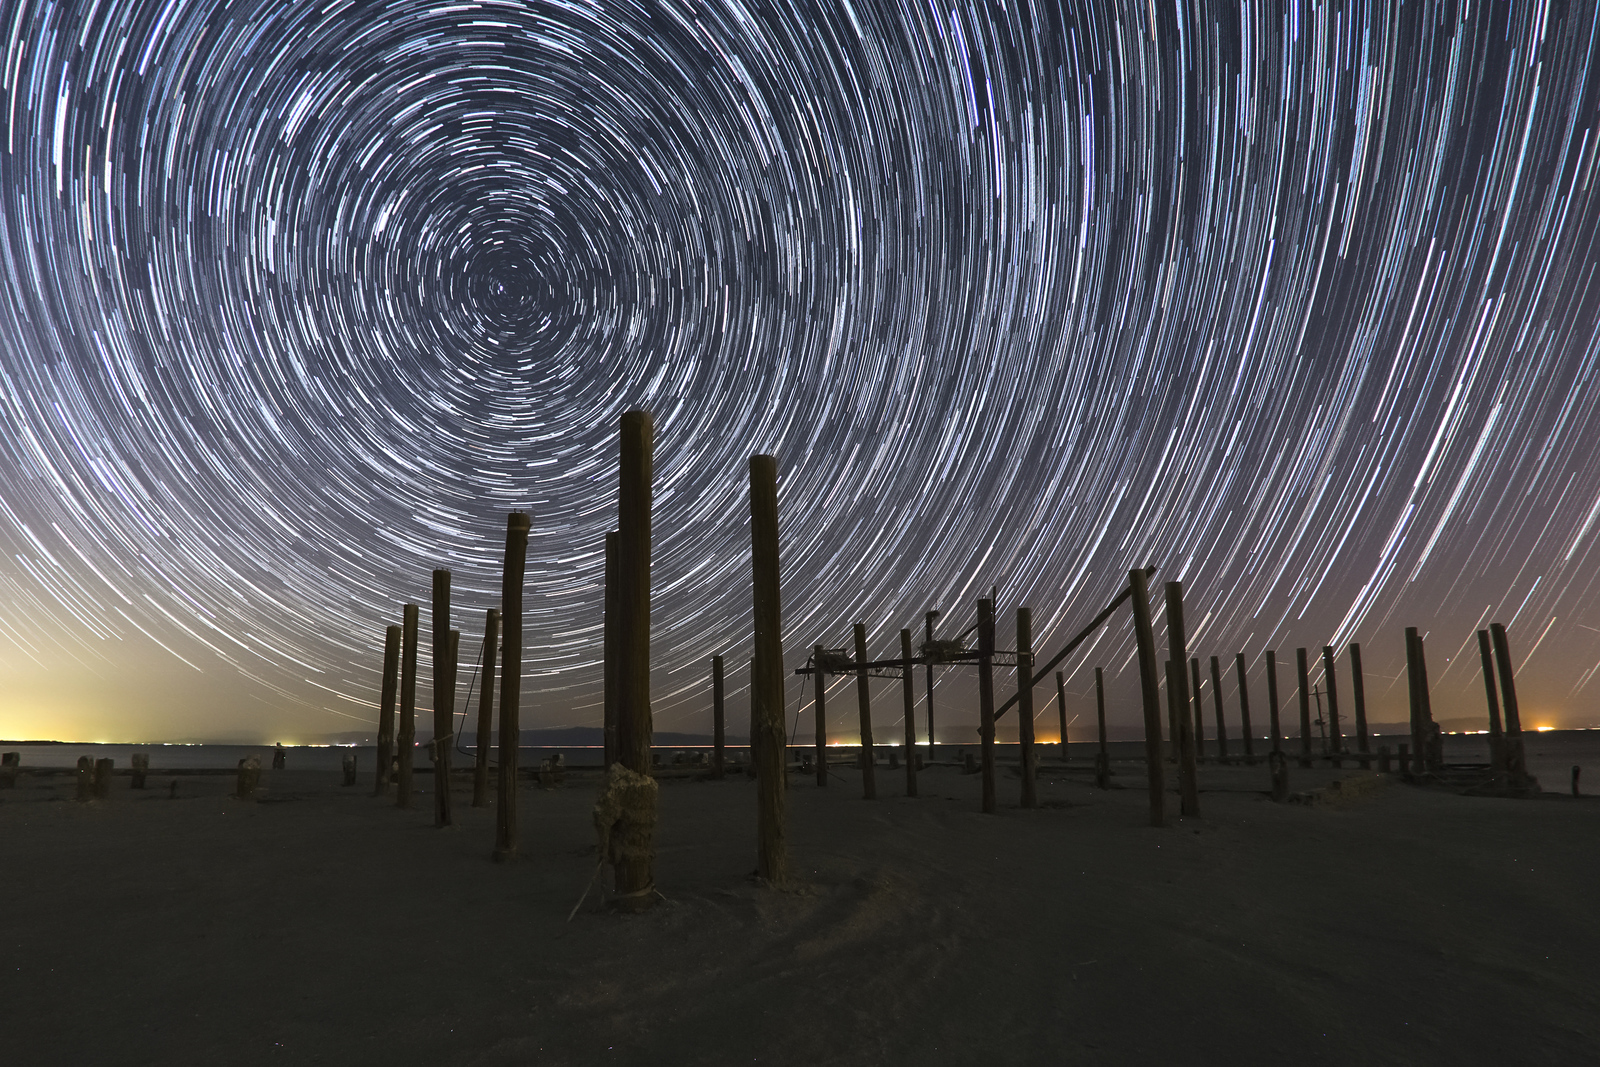 Star Trails and Pilings from an Old Pier at the Salton Sea Naval Station.